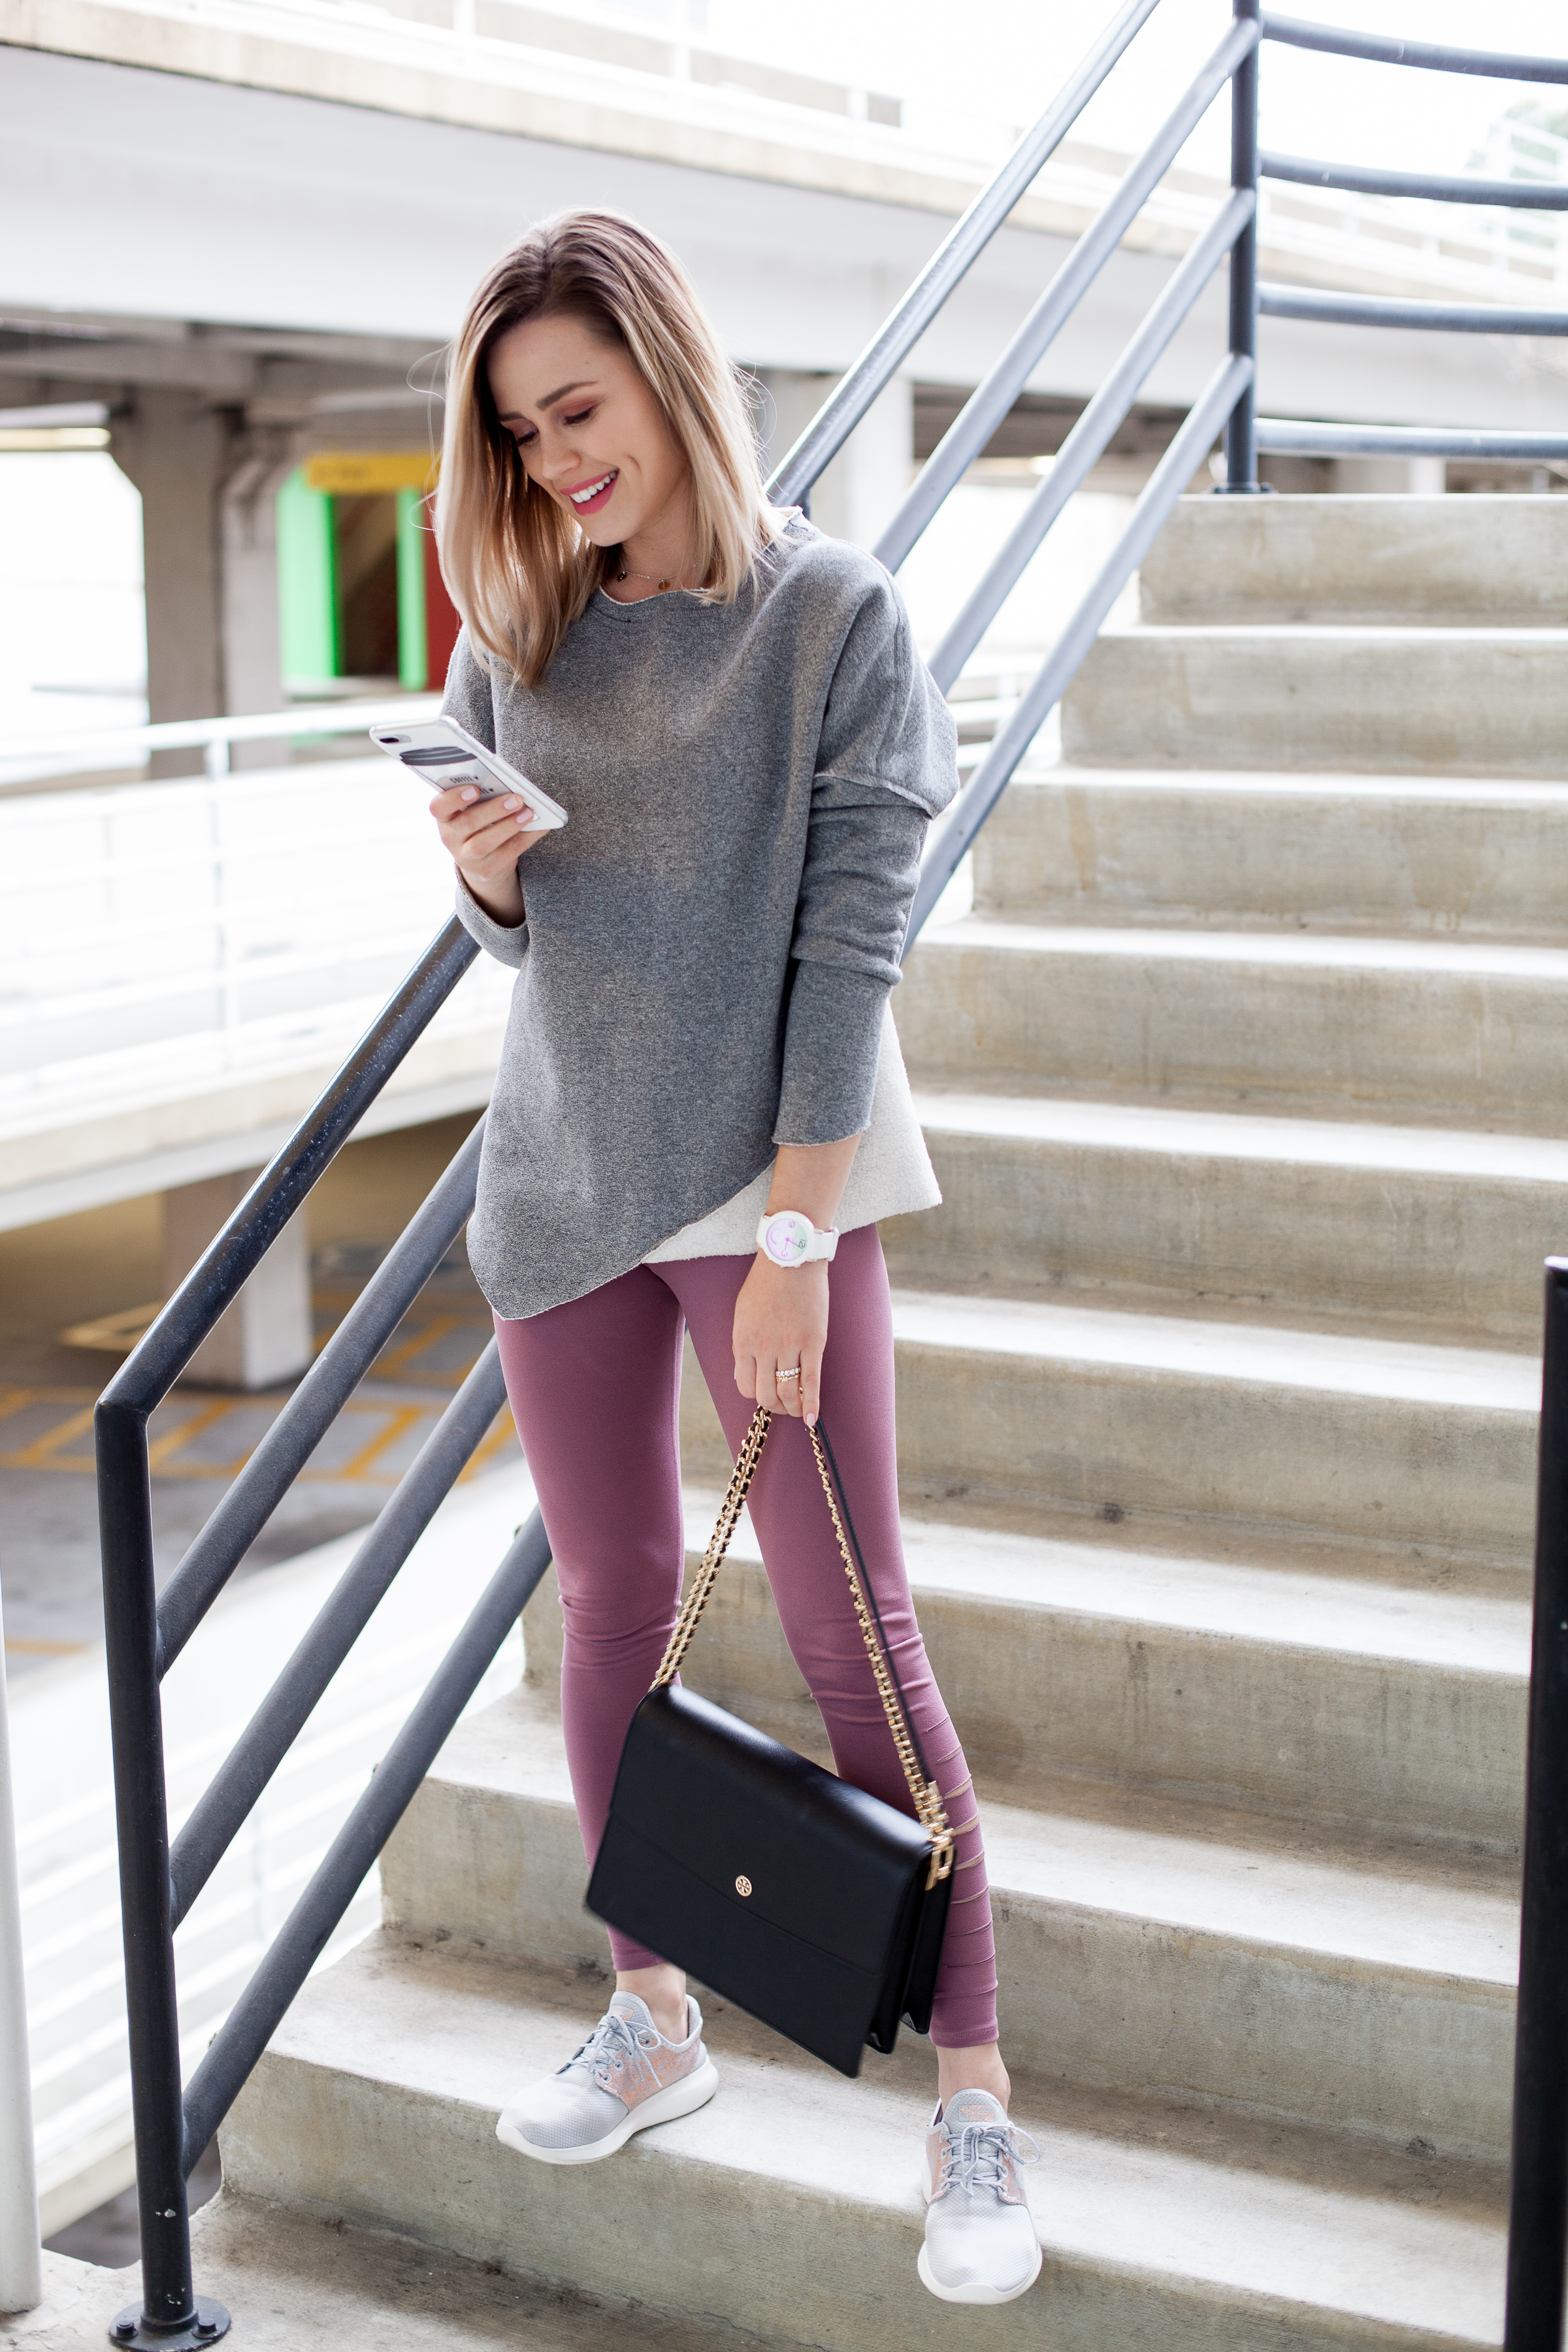 Houston fashion blogger Uptown with Elly Brown shares how to wear the Athleisure Style that can take you from the gym to brunch. Click here for more!